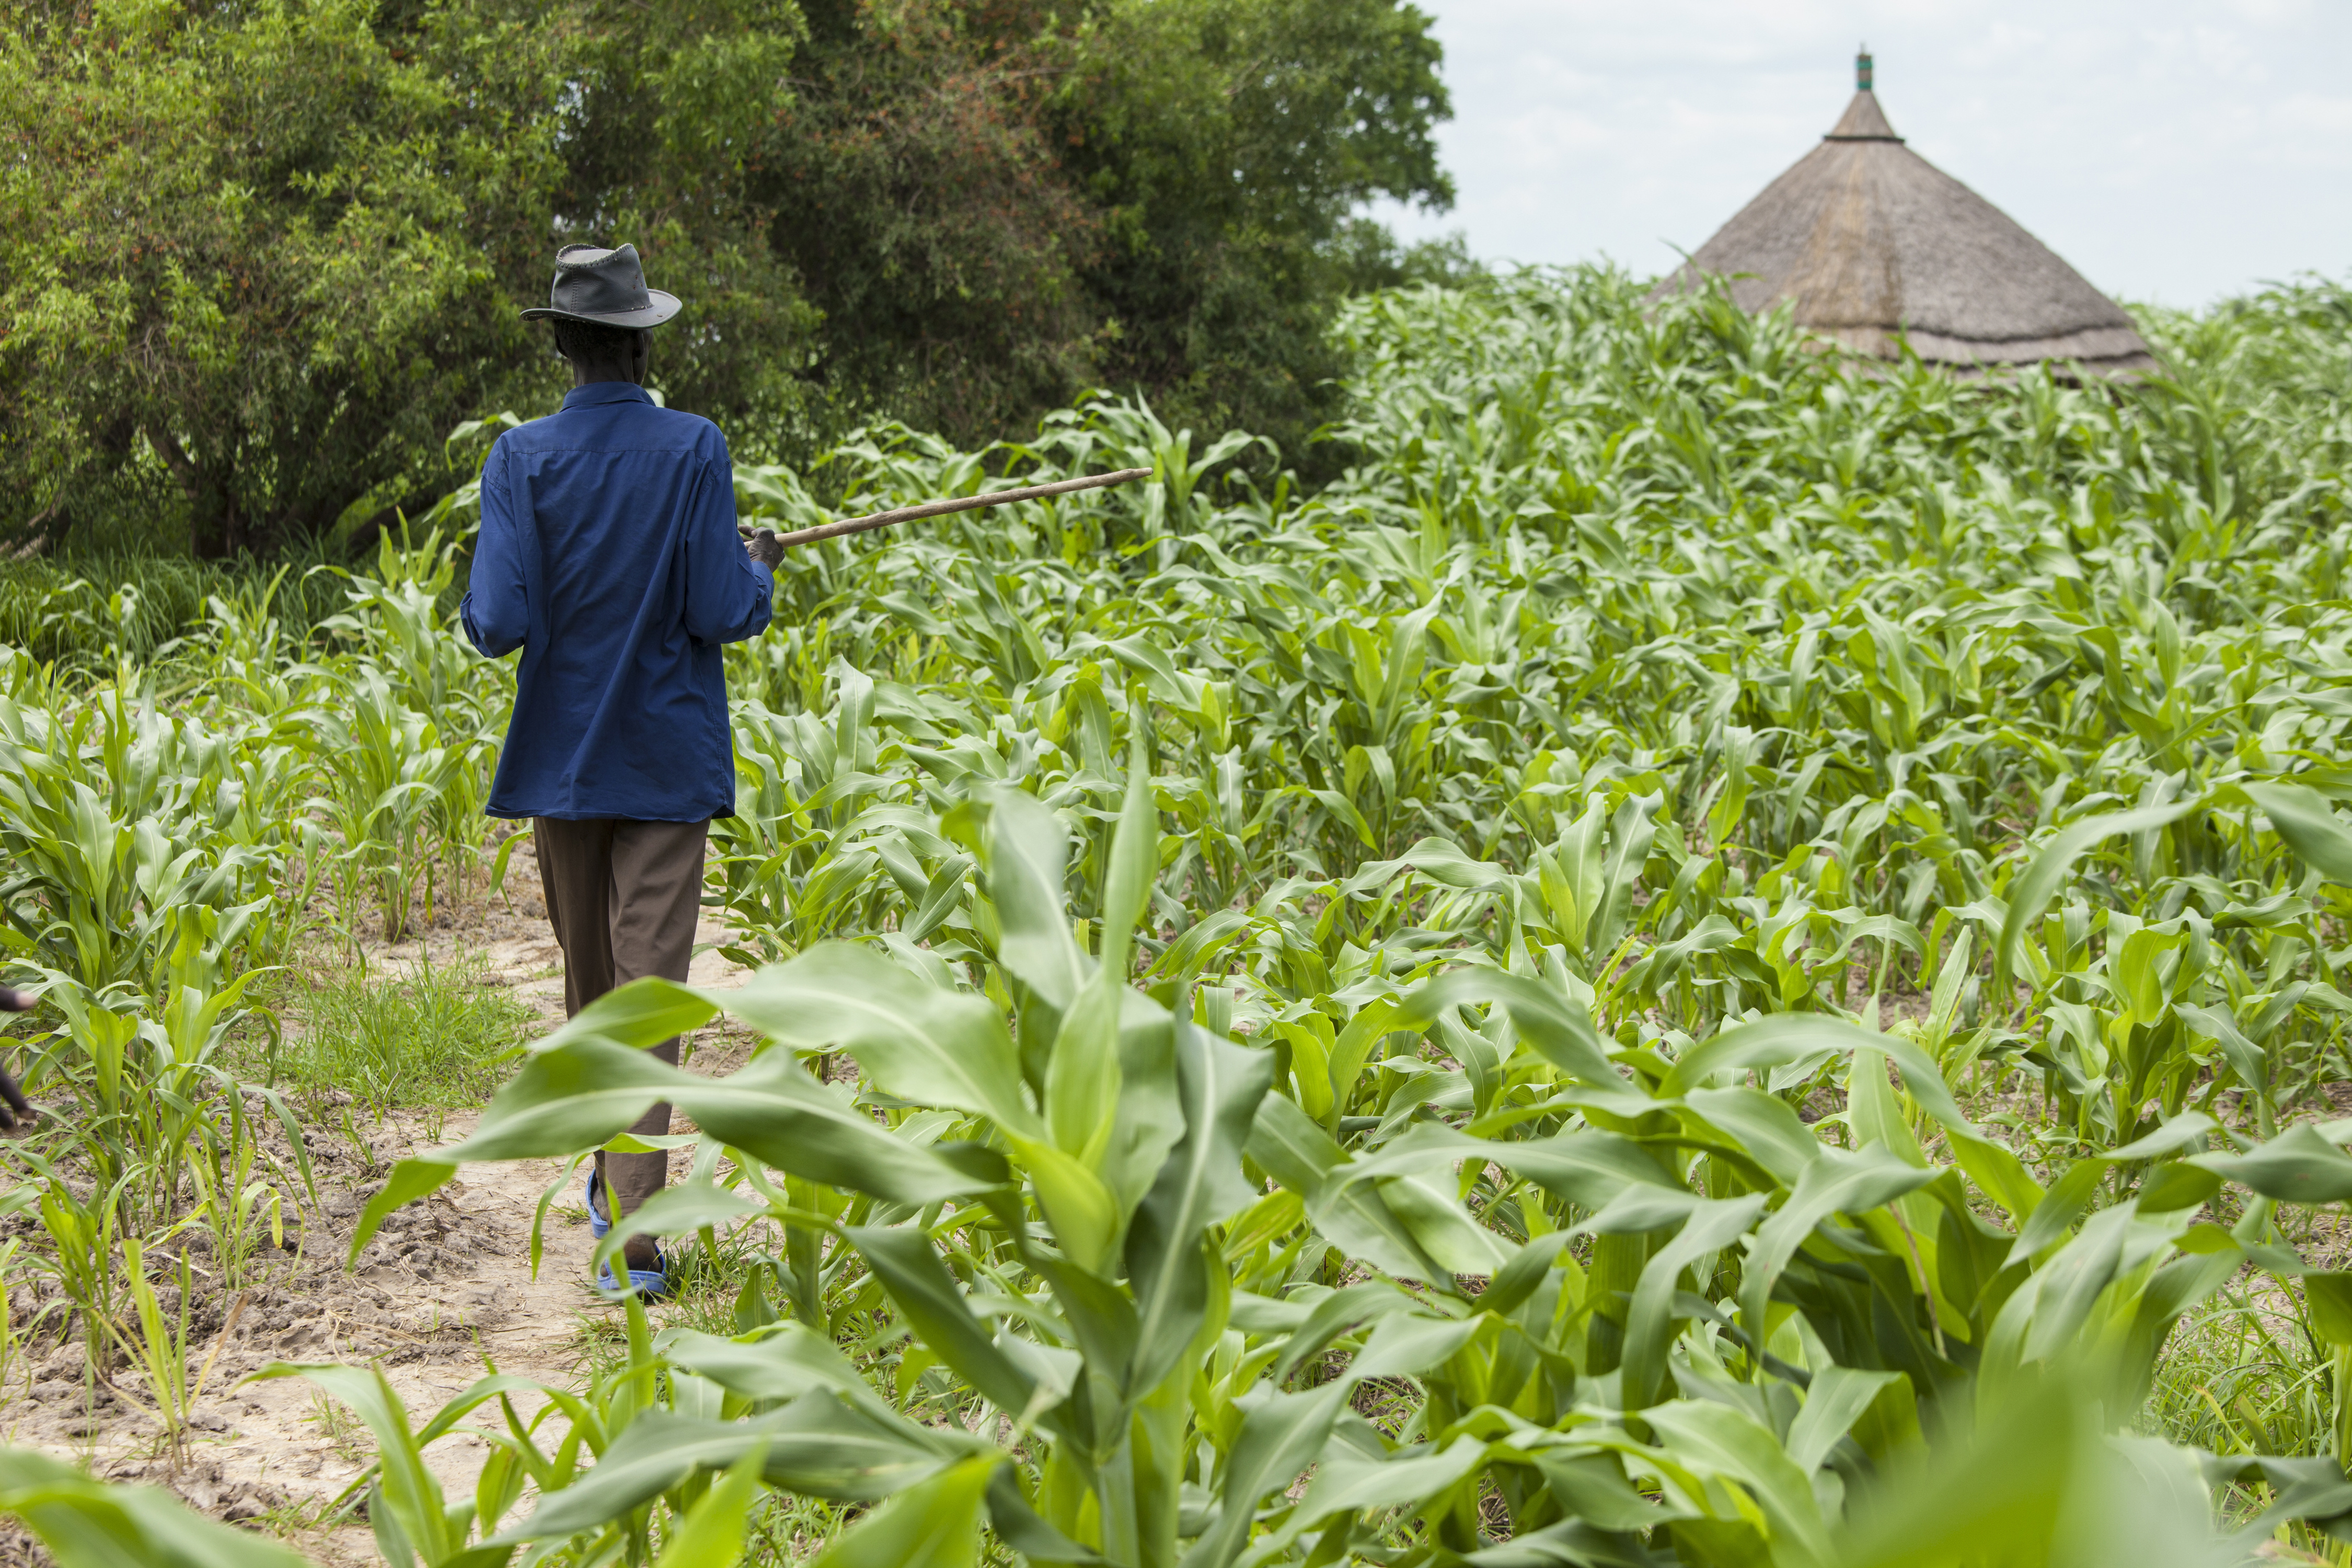 CREATION OF A MAJOR AGRO-PARK IN KARA, TO DRIVE THE DEVELOPMENT OF TOGOLESE AGRO-INSTRUSTRY